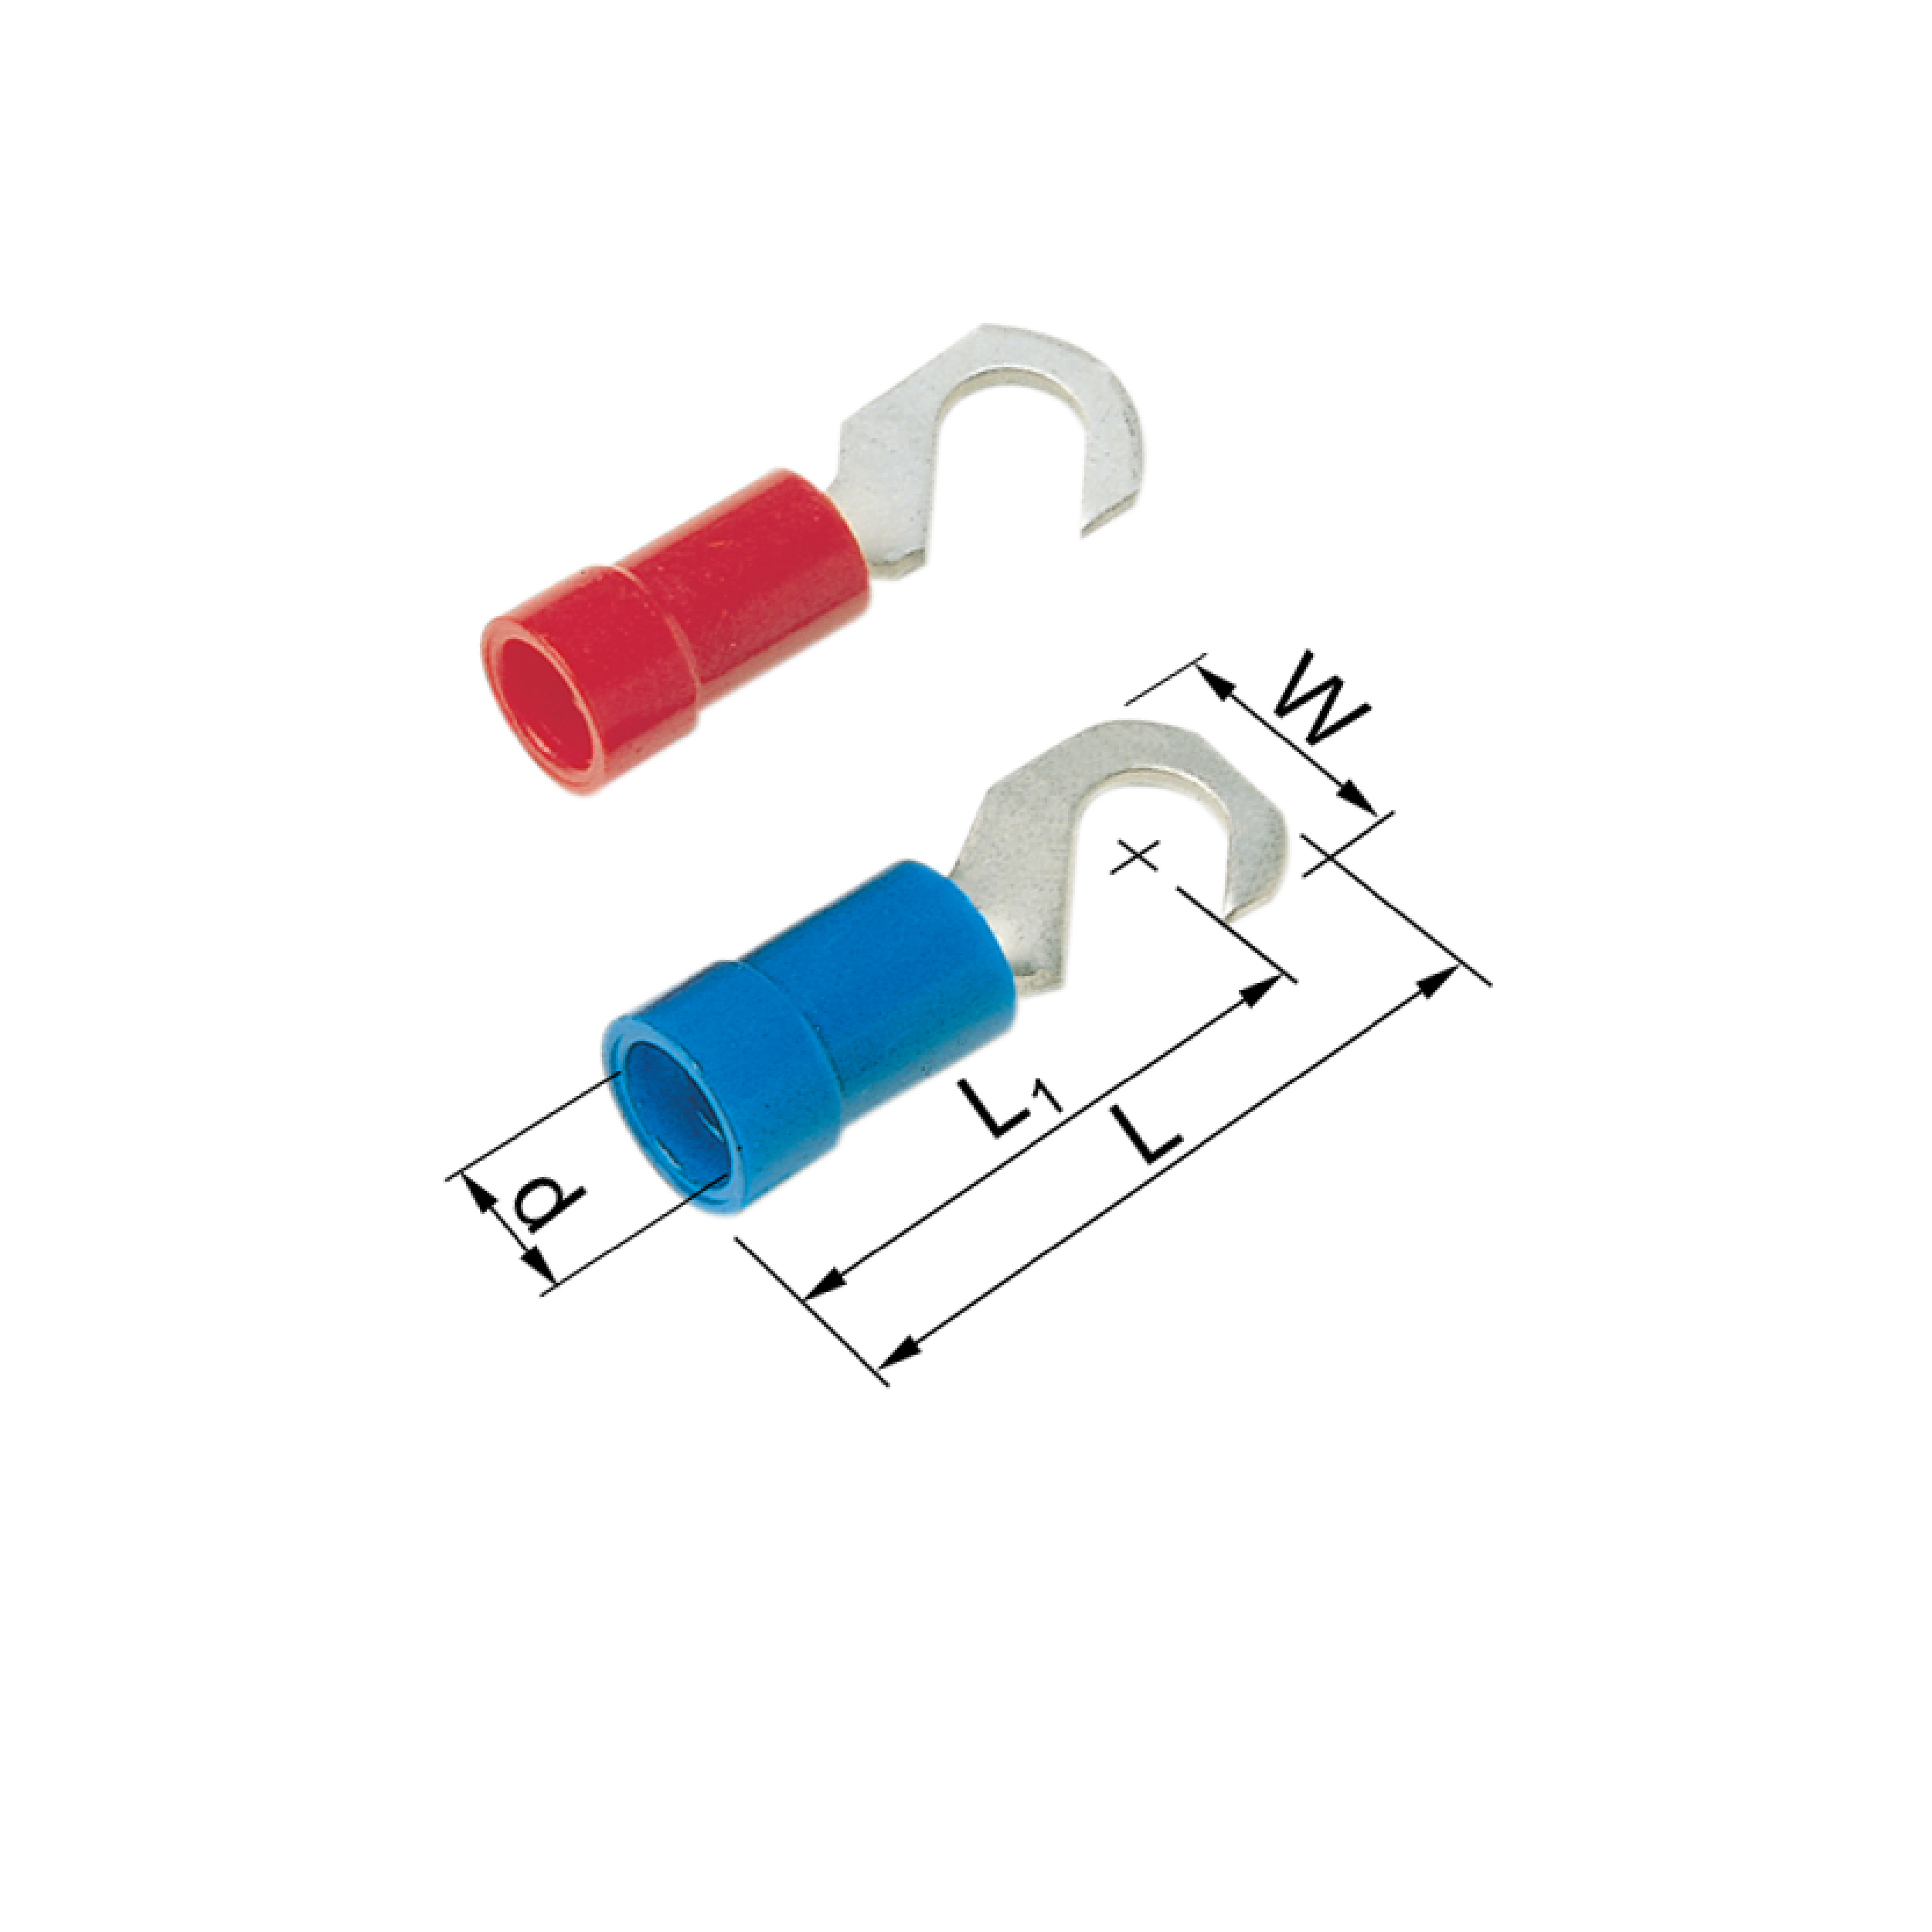 Elpress Pre-Insulated Hook Terminals - Halogen Free (0.5-2.5mm²) A1543K, A2543K